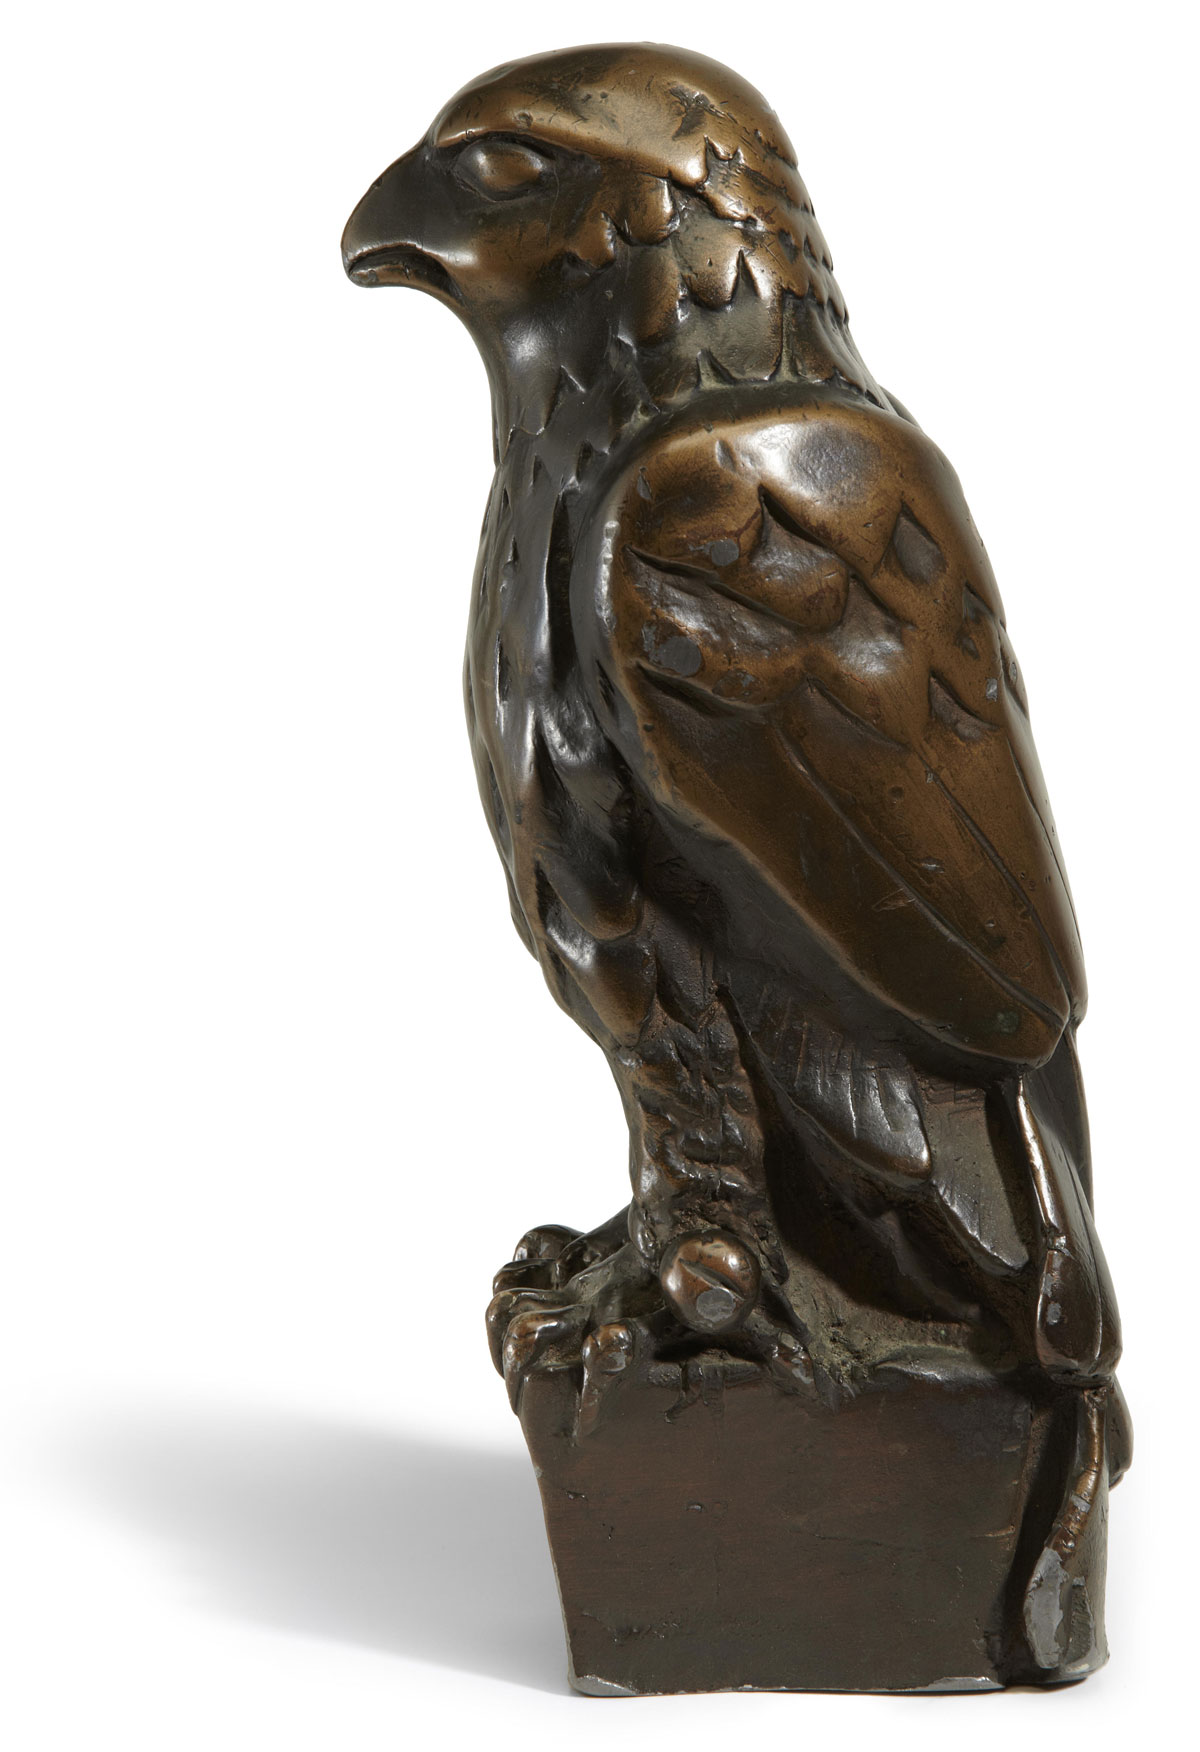 Maltese Falcon From The 1941 Movie 3 Jane Street Clayworks